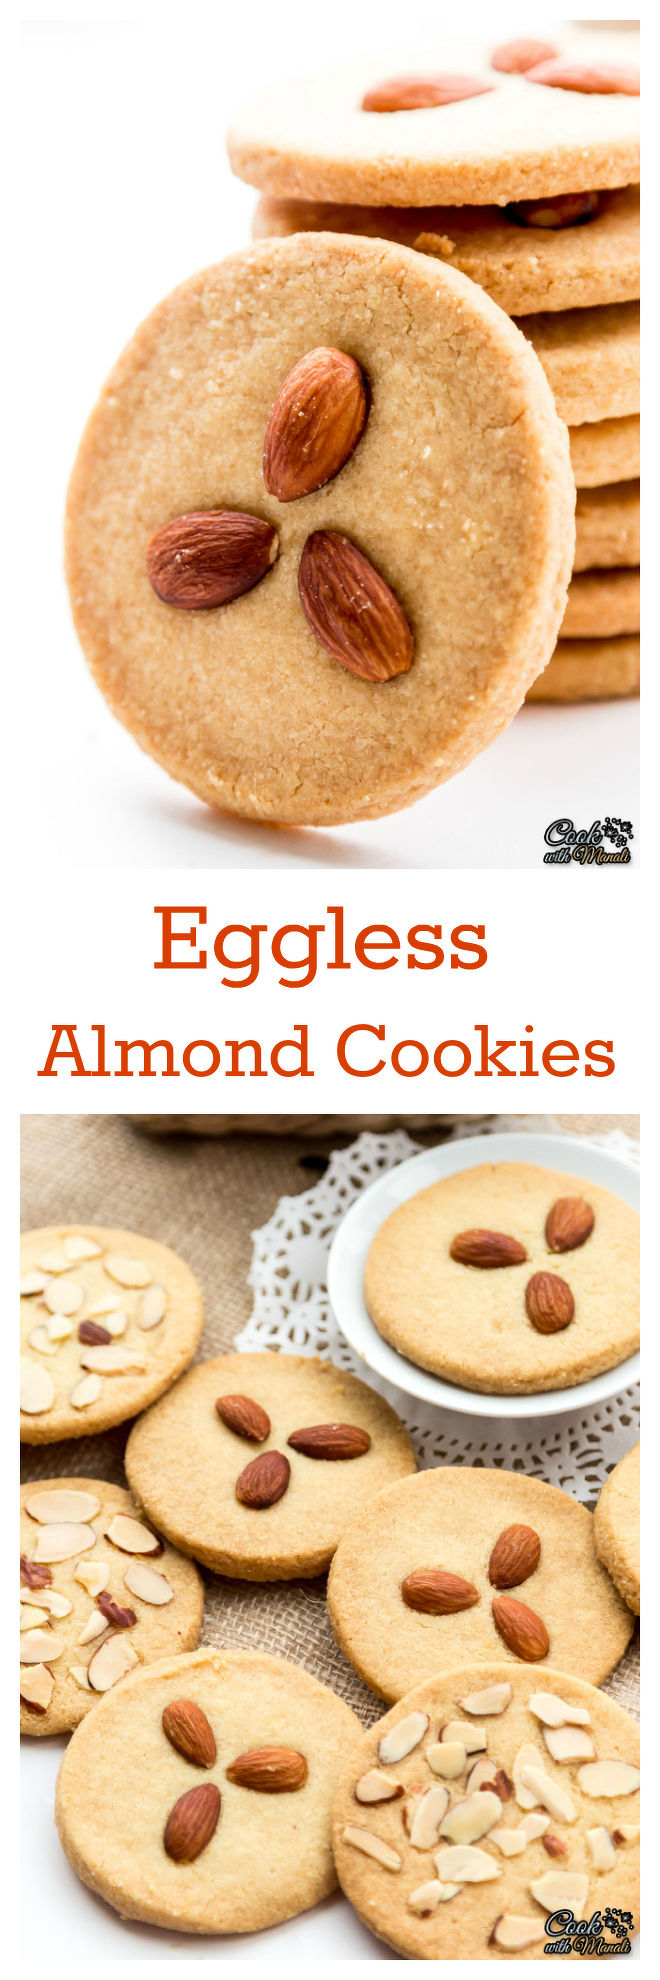 Eggless-Almond-Cookies-Collage-nocwm